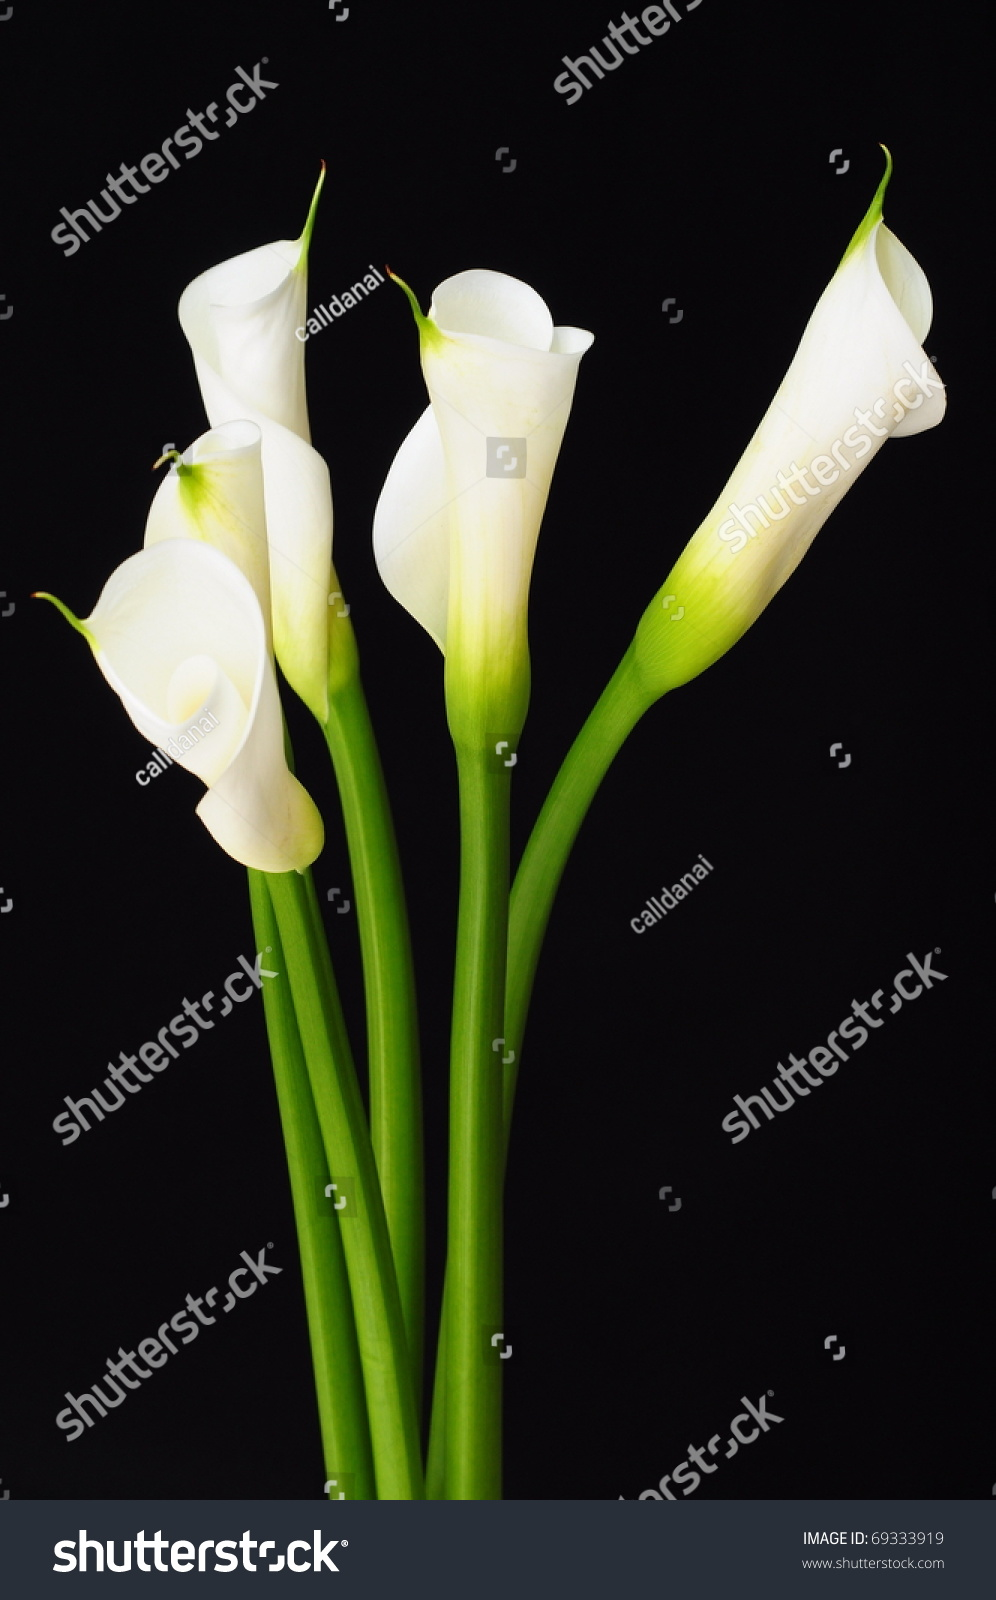 Beautiful white calla lily flower stock photo 69333919 shutterstock beautiful white calla lily flower izmirmasajfo Image collections